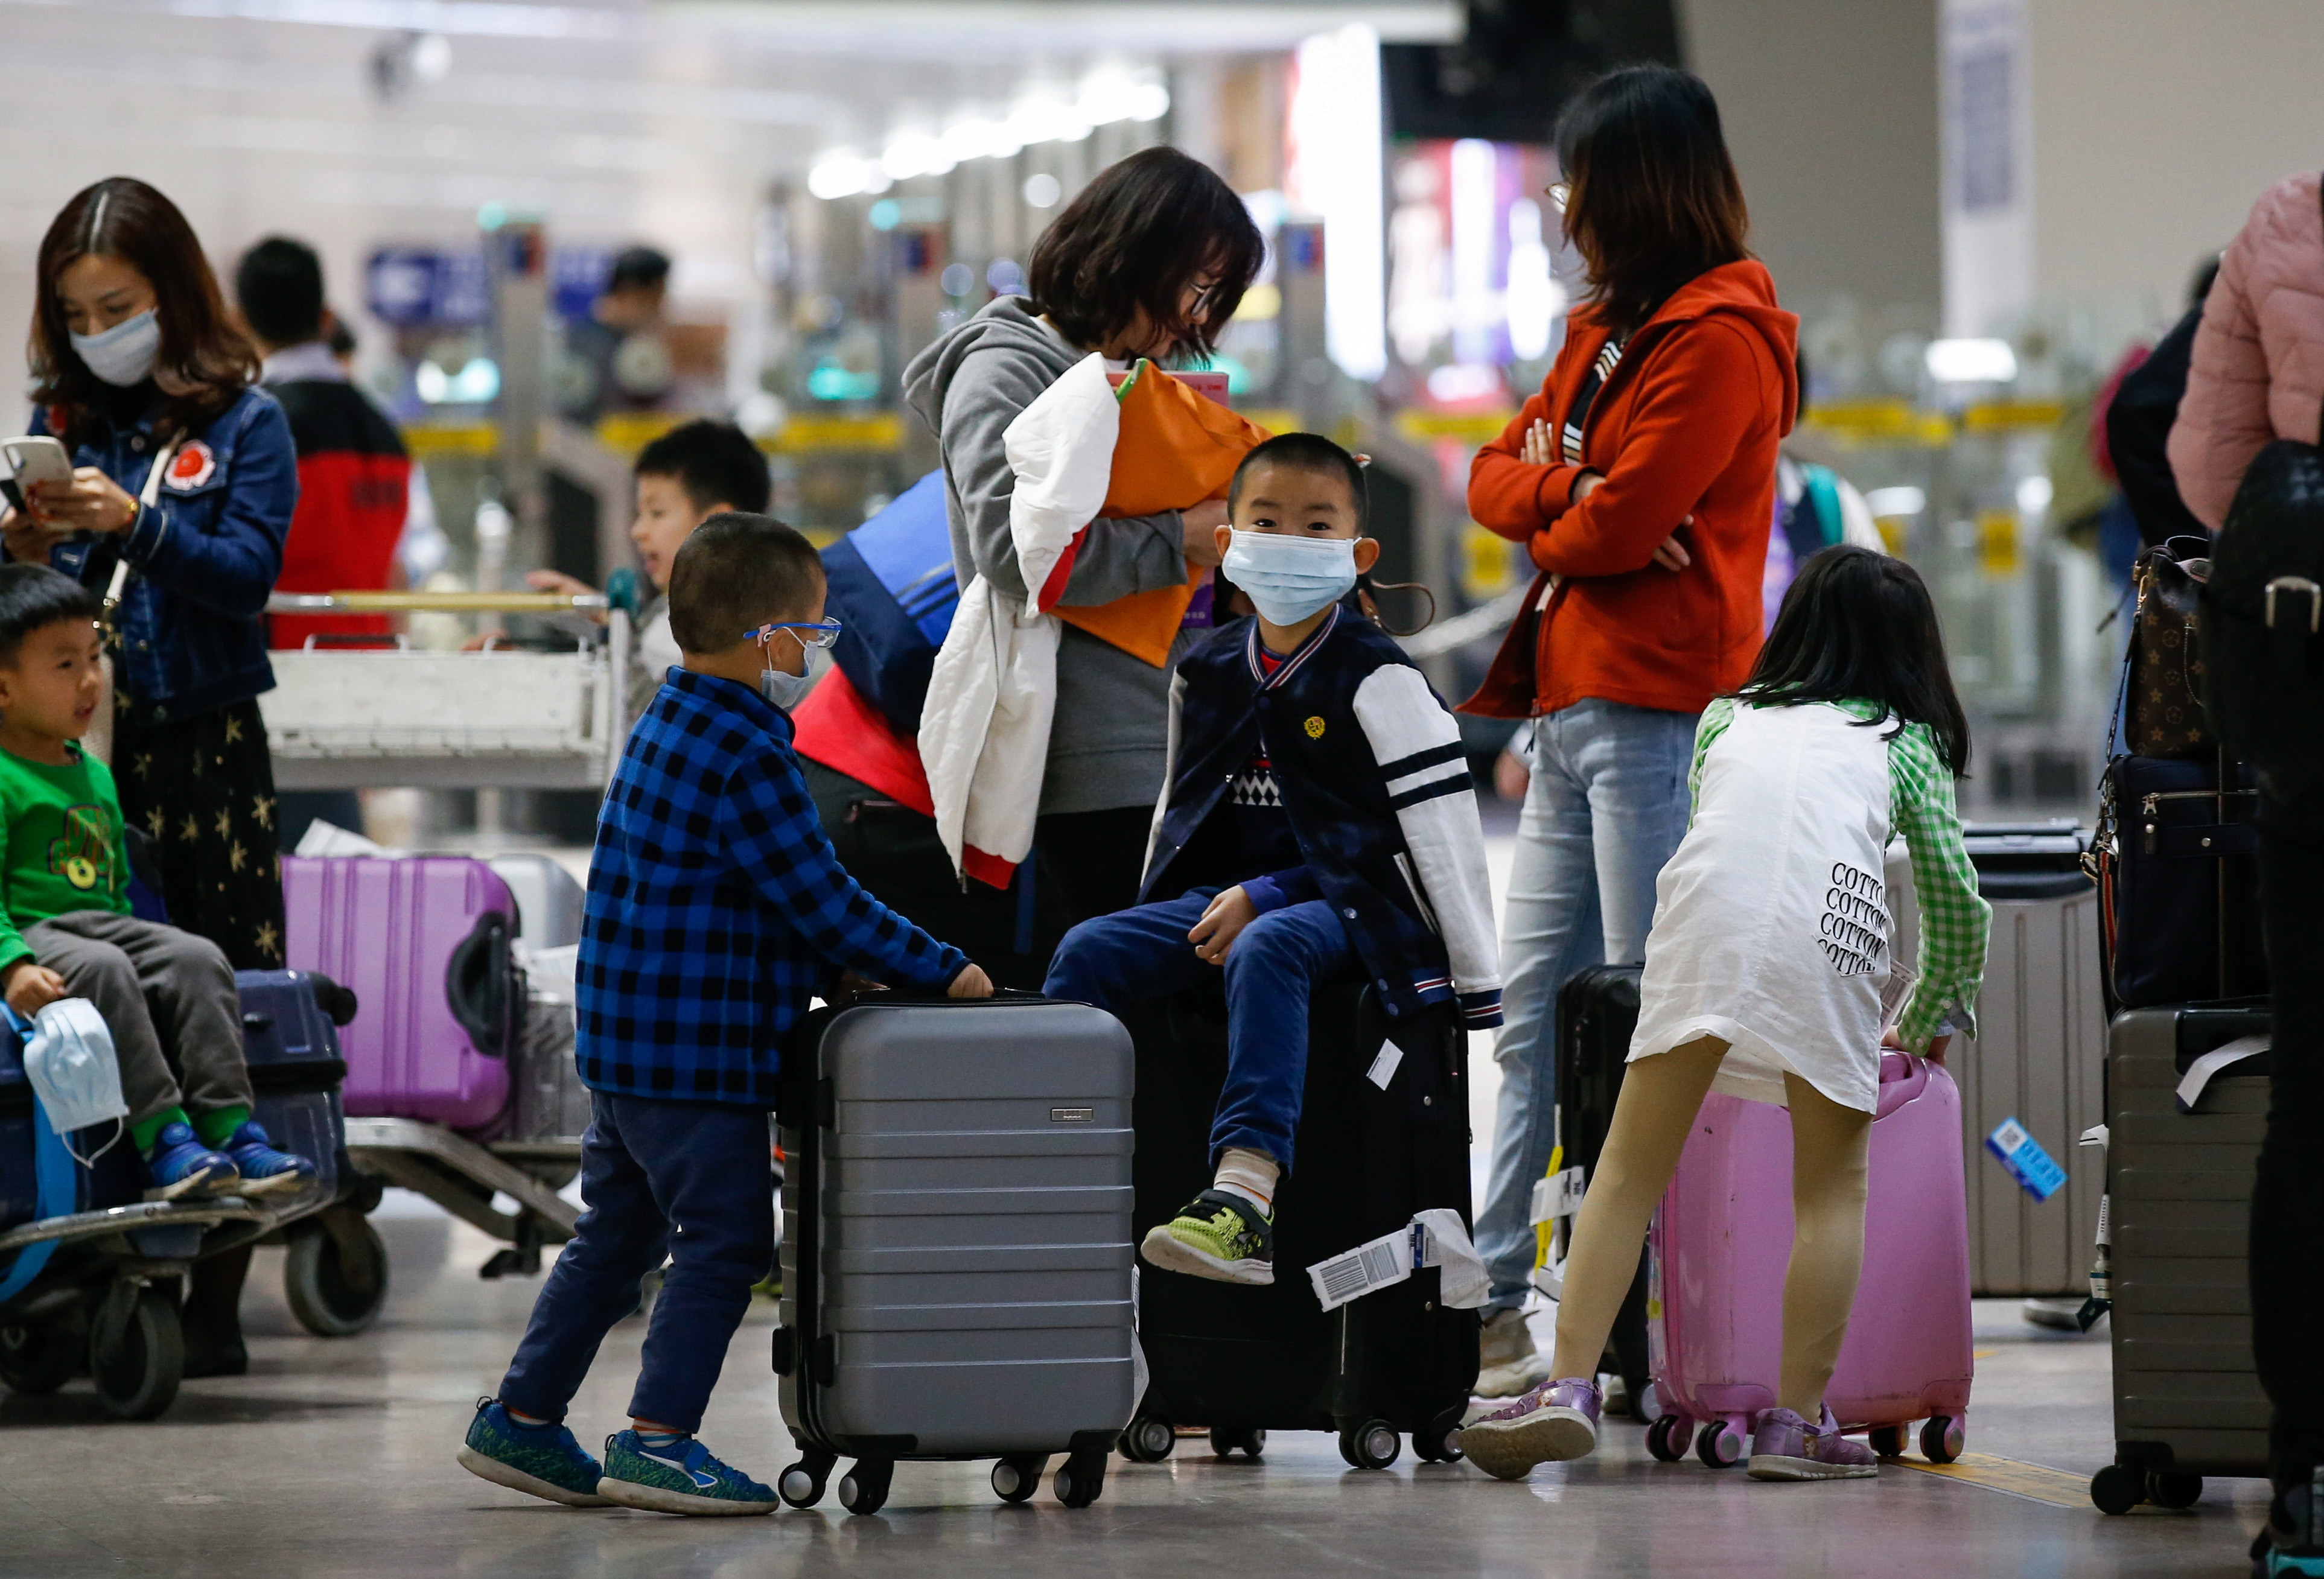 A boy wearing a face mask, who arrived from Guangzhou, China sits on top of a luggage at the Ninoy Aquino International Airport in Manila, Philippines